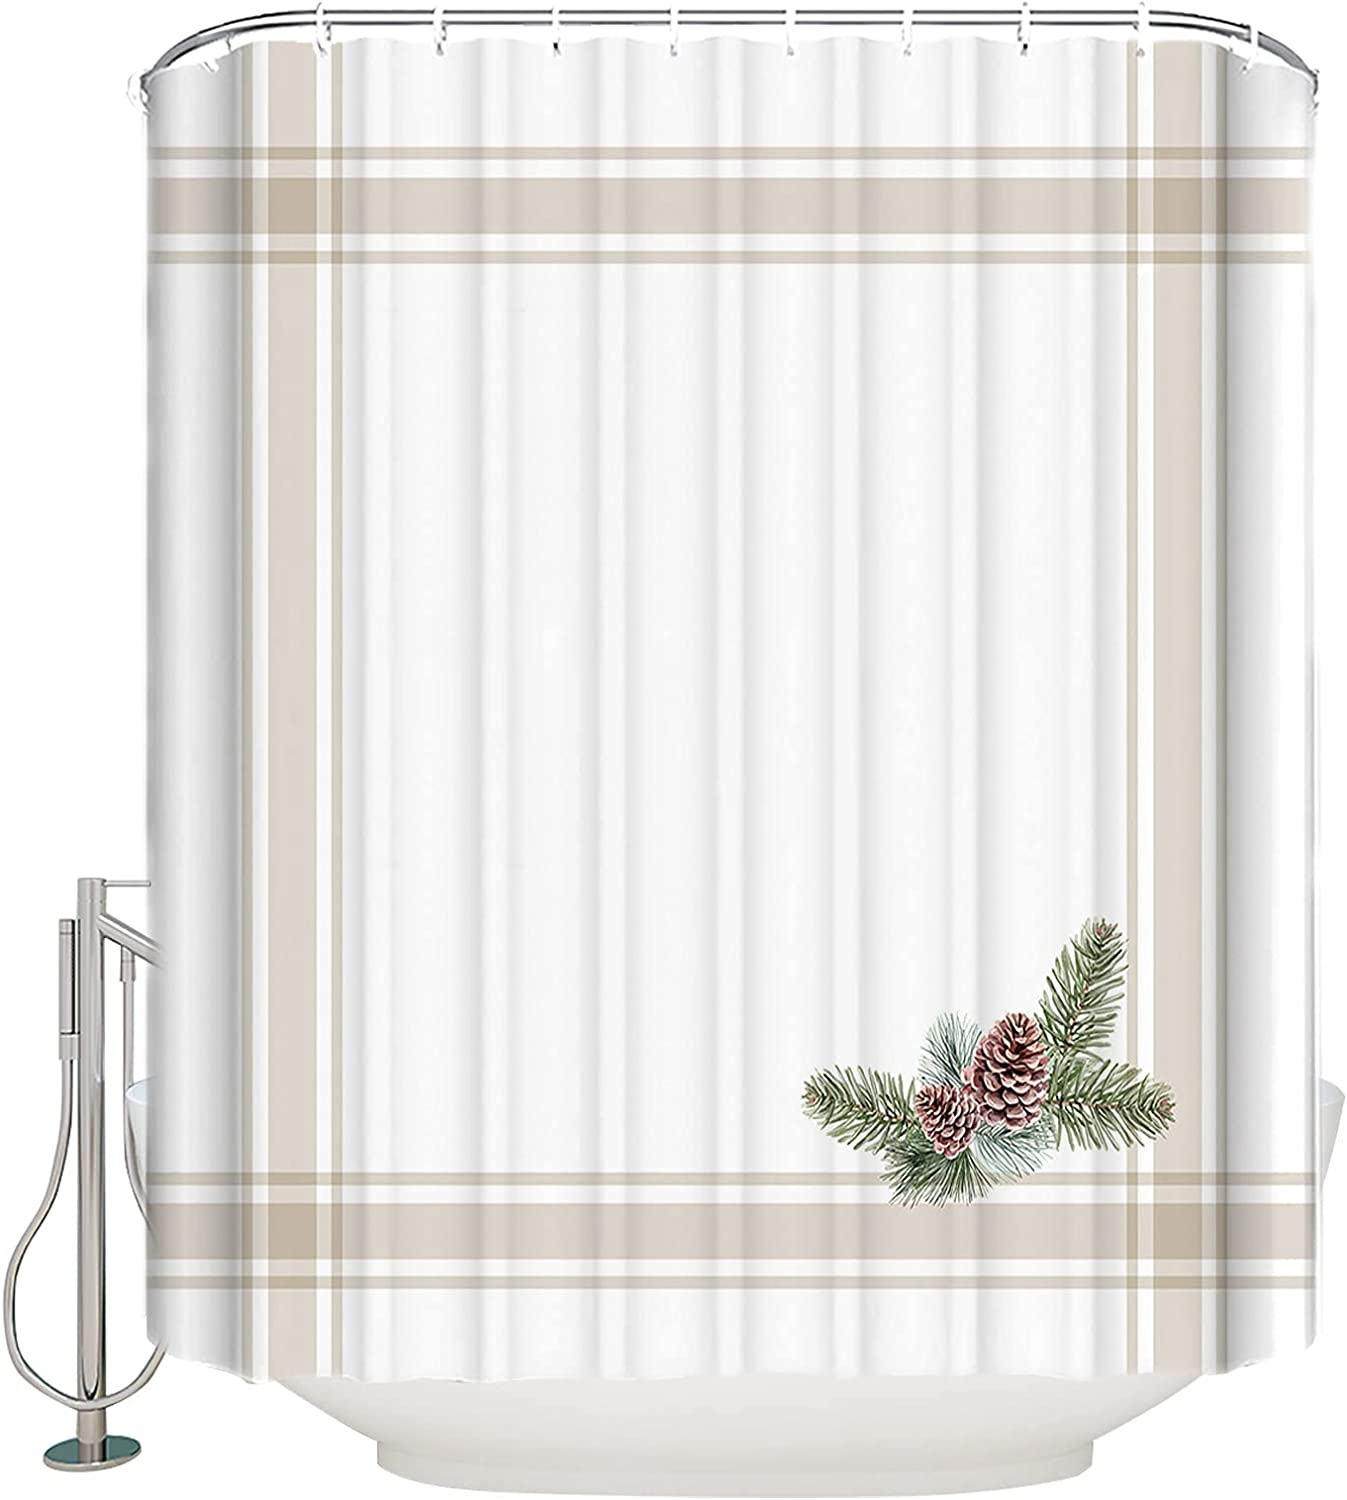 Futuregrace Fabric Shower Industry No. 1 Curtain for Christmas Pine C High quality new Bathroom